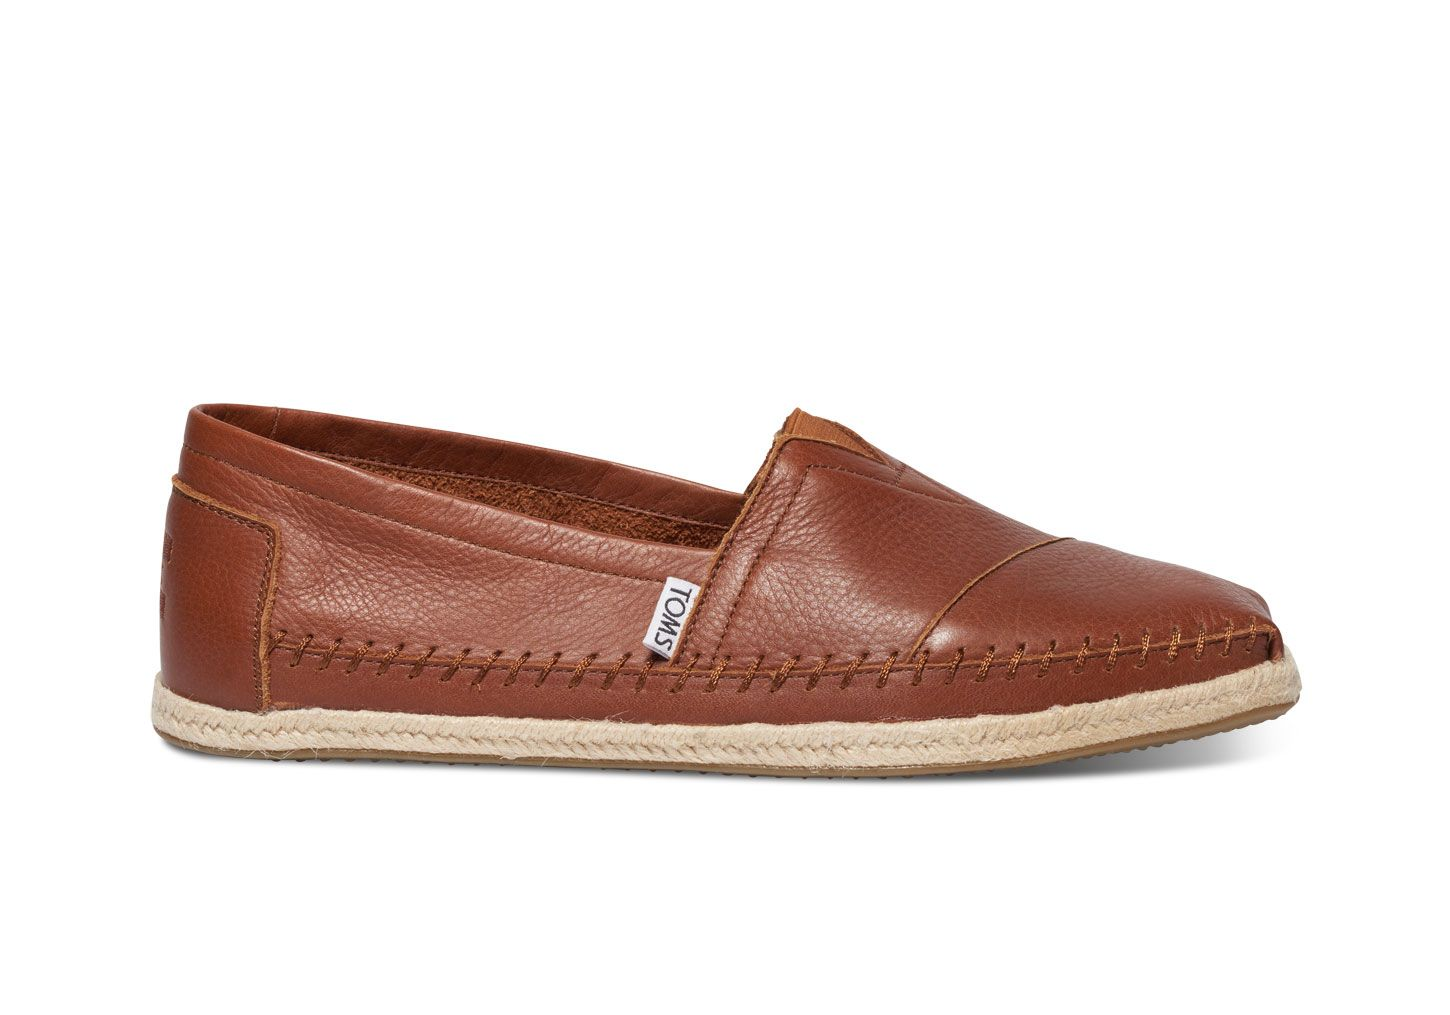 undefined Cognac Full Grain Leather Men's Classics | My his look! |  Pinterest | Leather, Sole and Shoes style